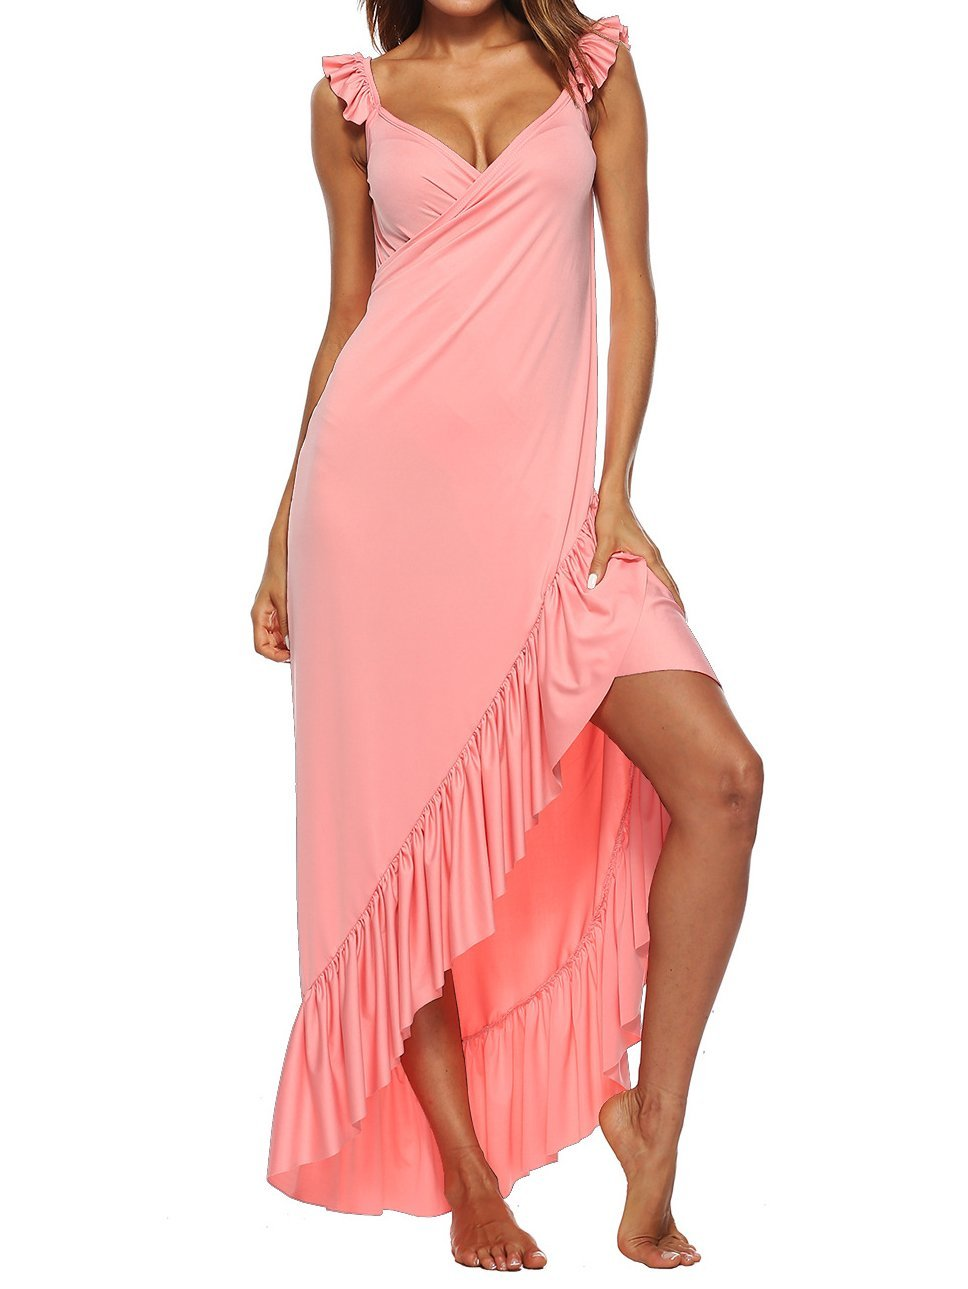 Solid Color V-neck Ruffled Beach Skirt